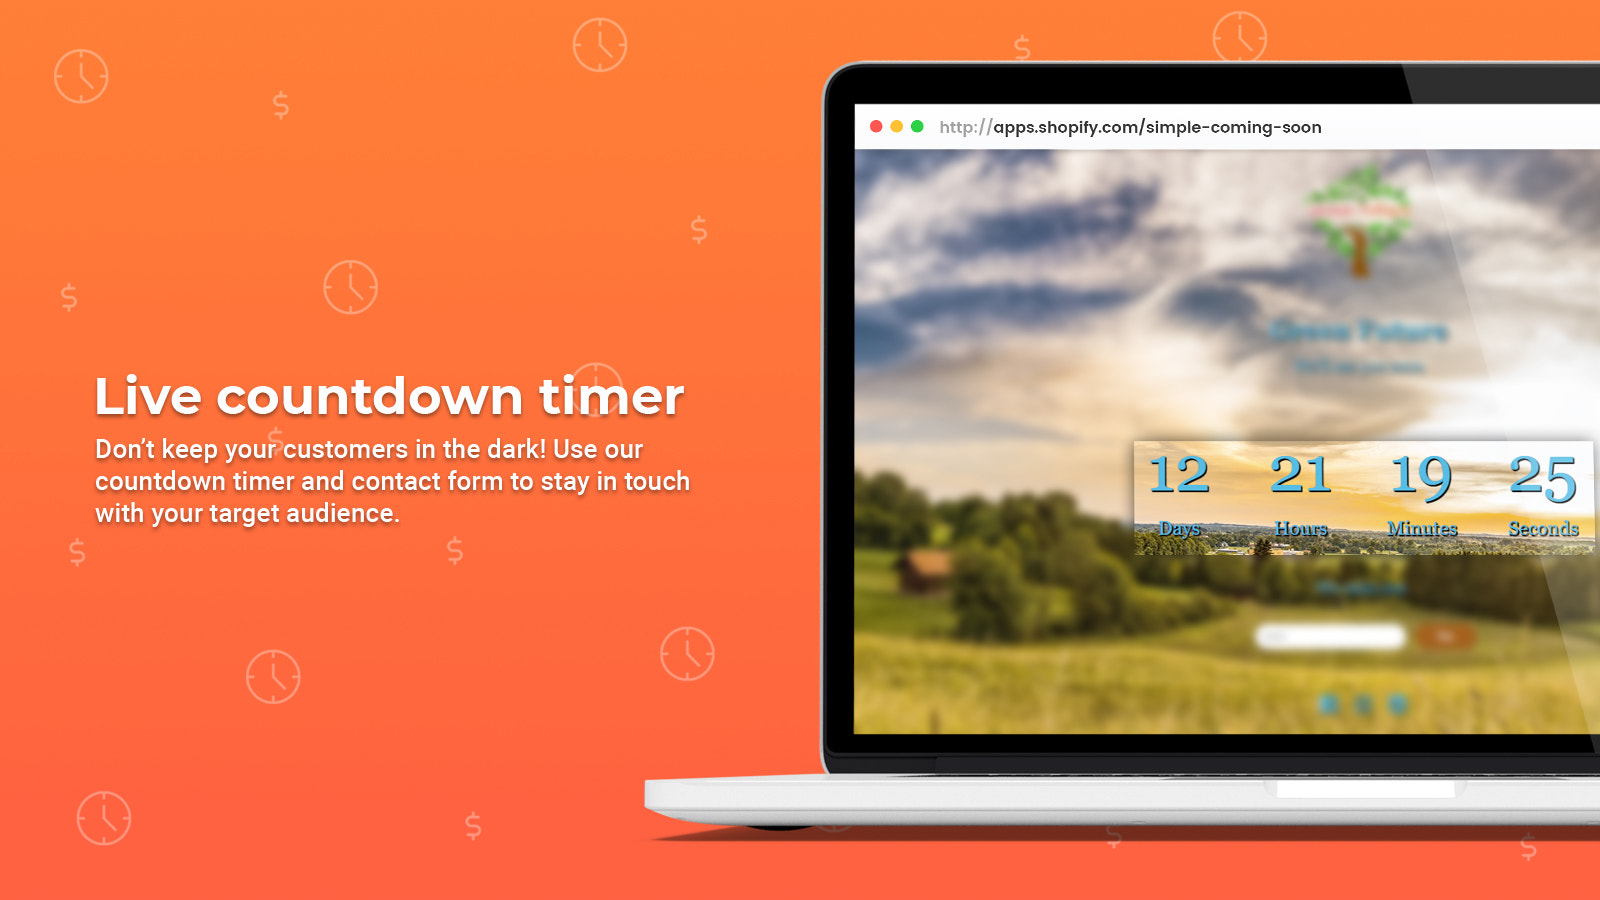 Live countdown timer